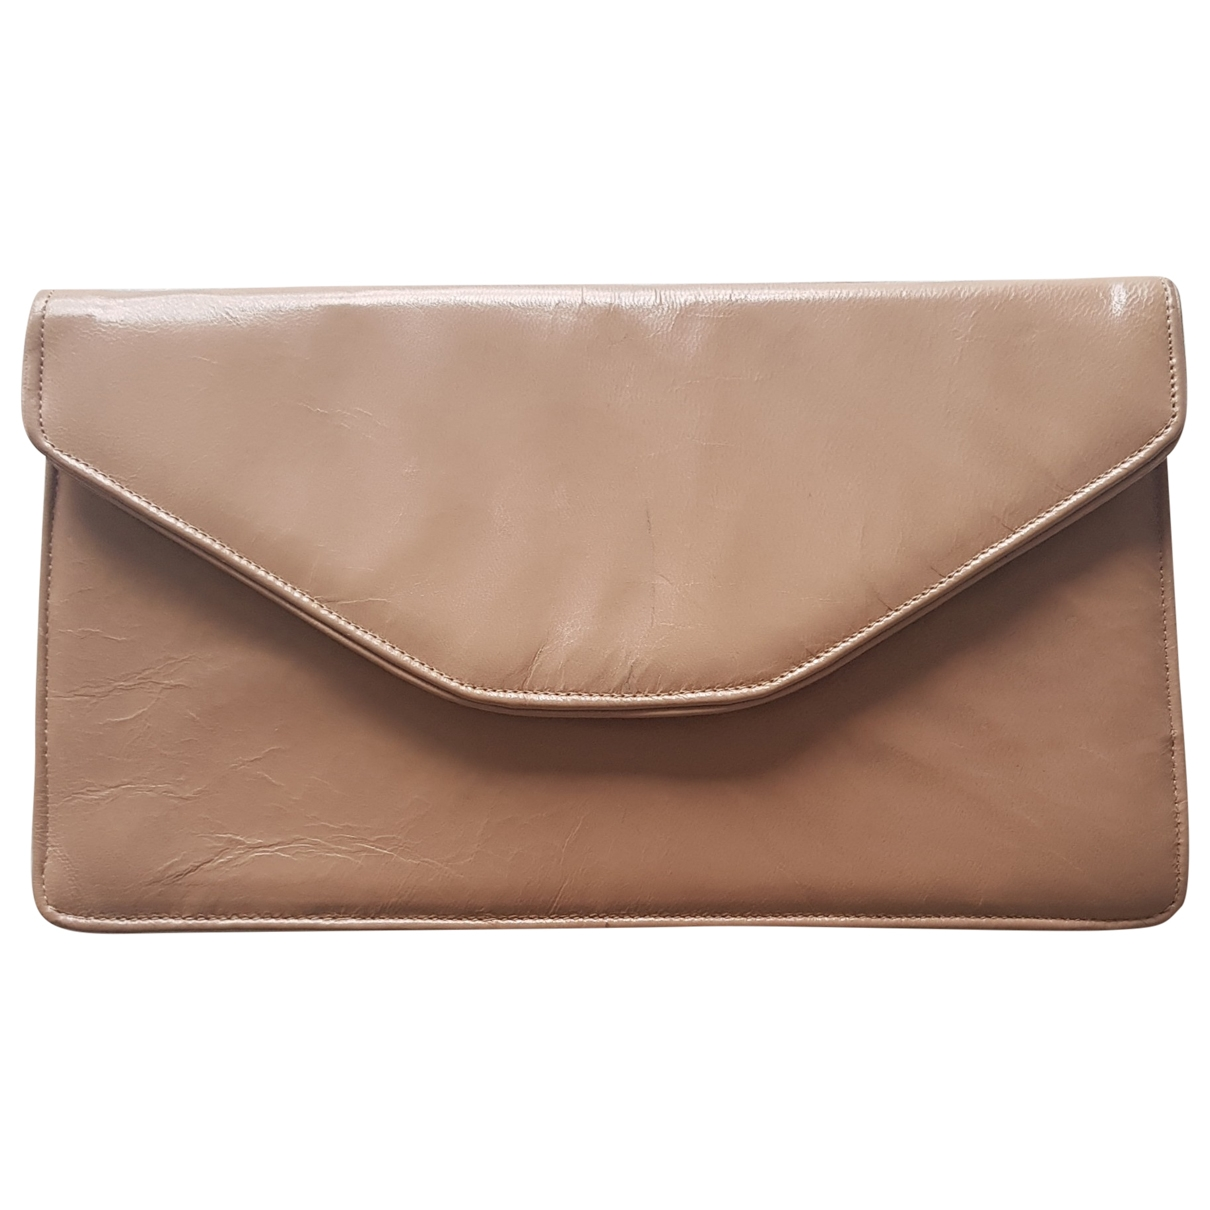 Non Signé / Unsigned \N Beige Leather Clutch bag for Women \N